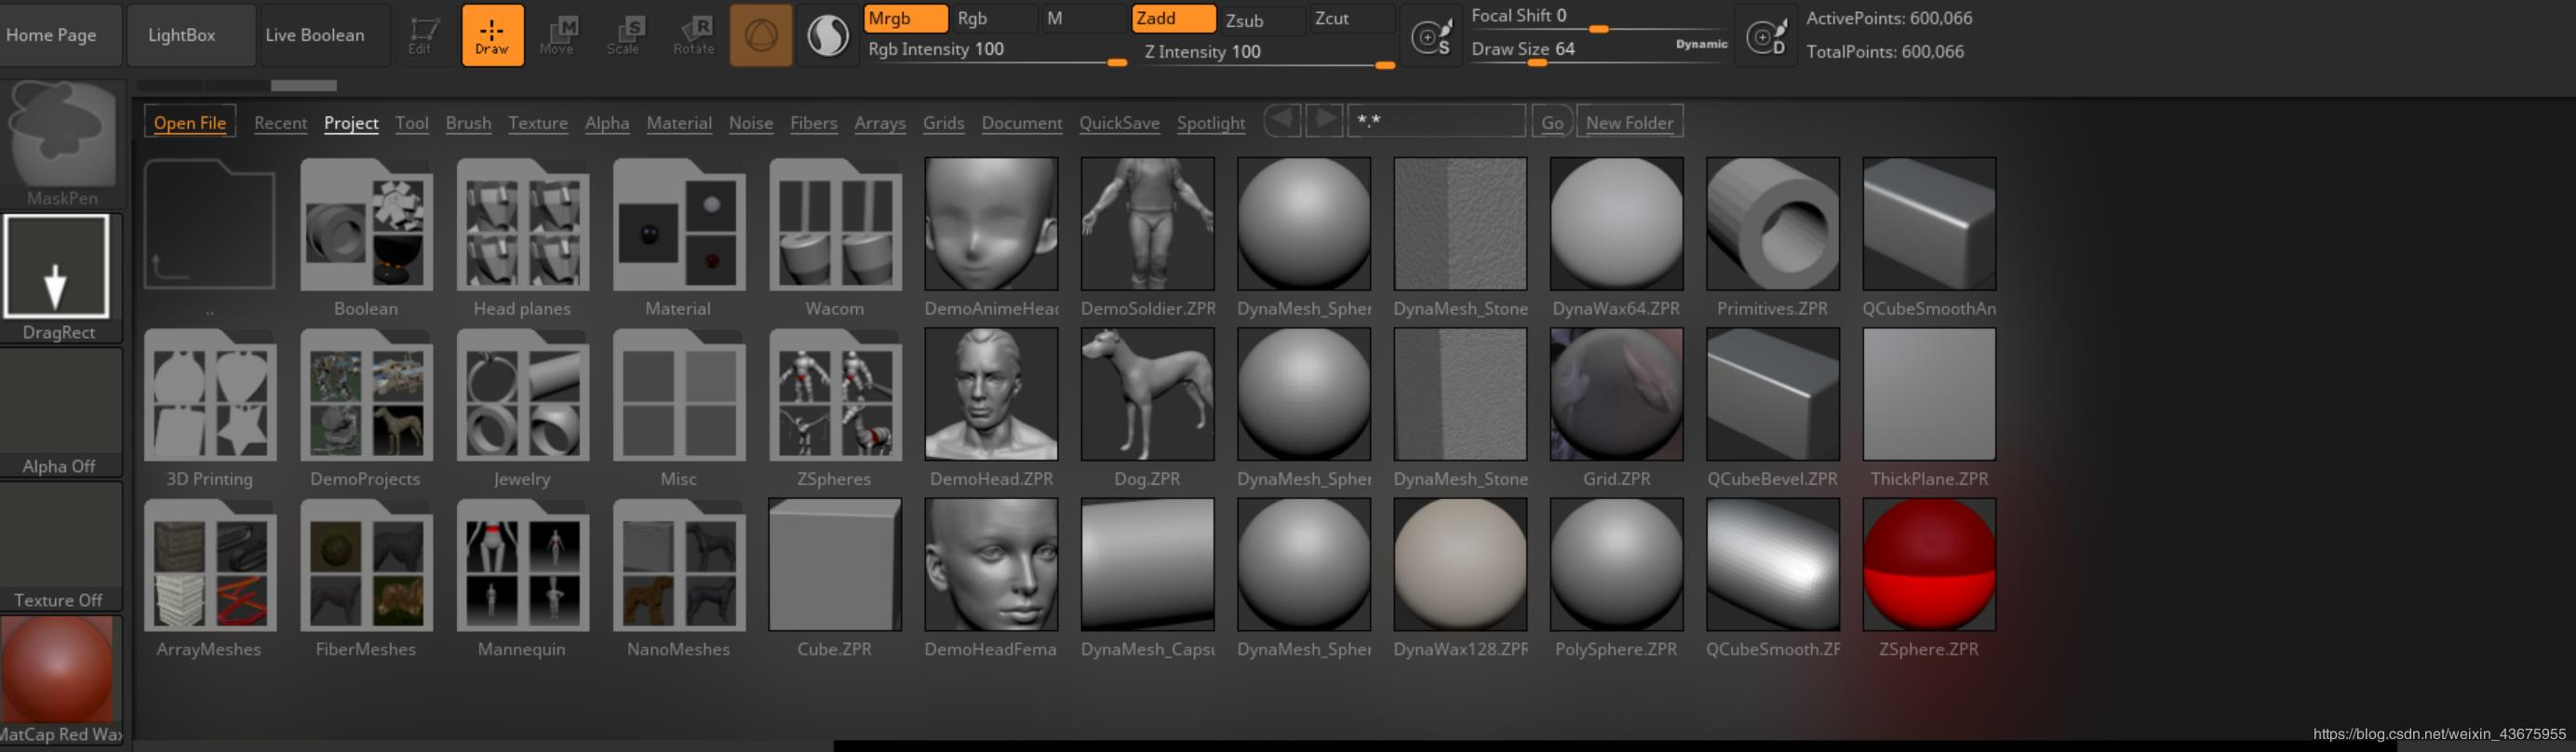 Modeling] ZBrush Quick Start - Programmer Sought